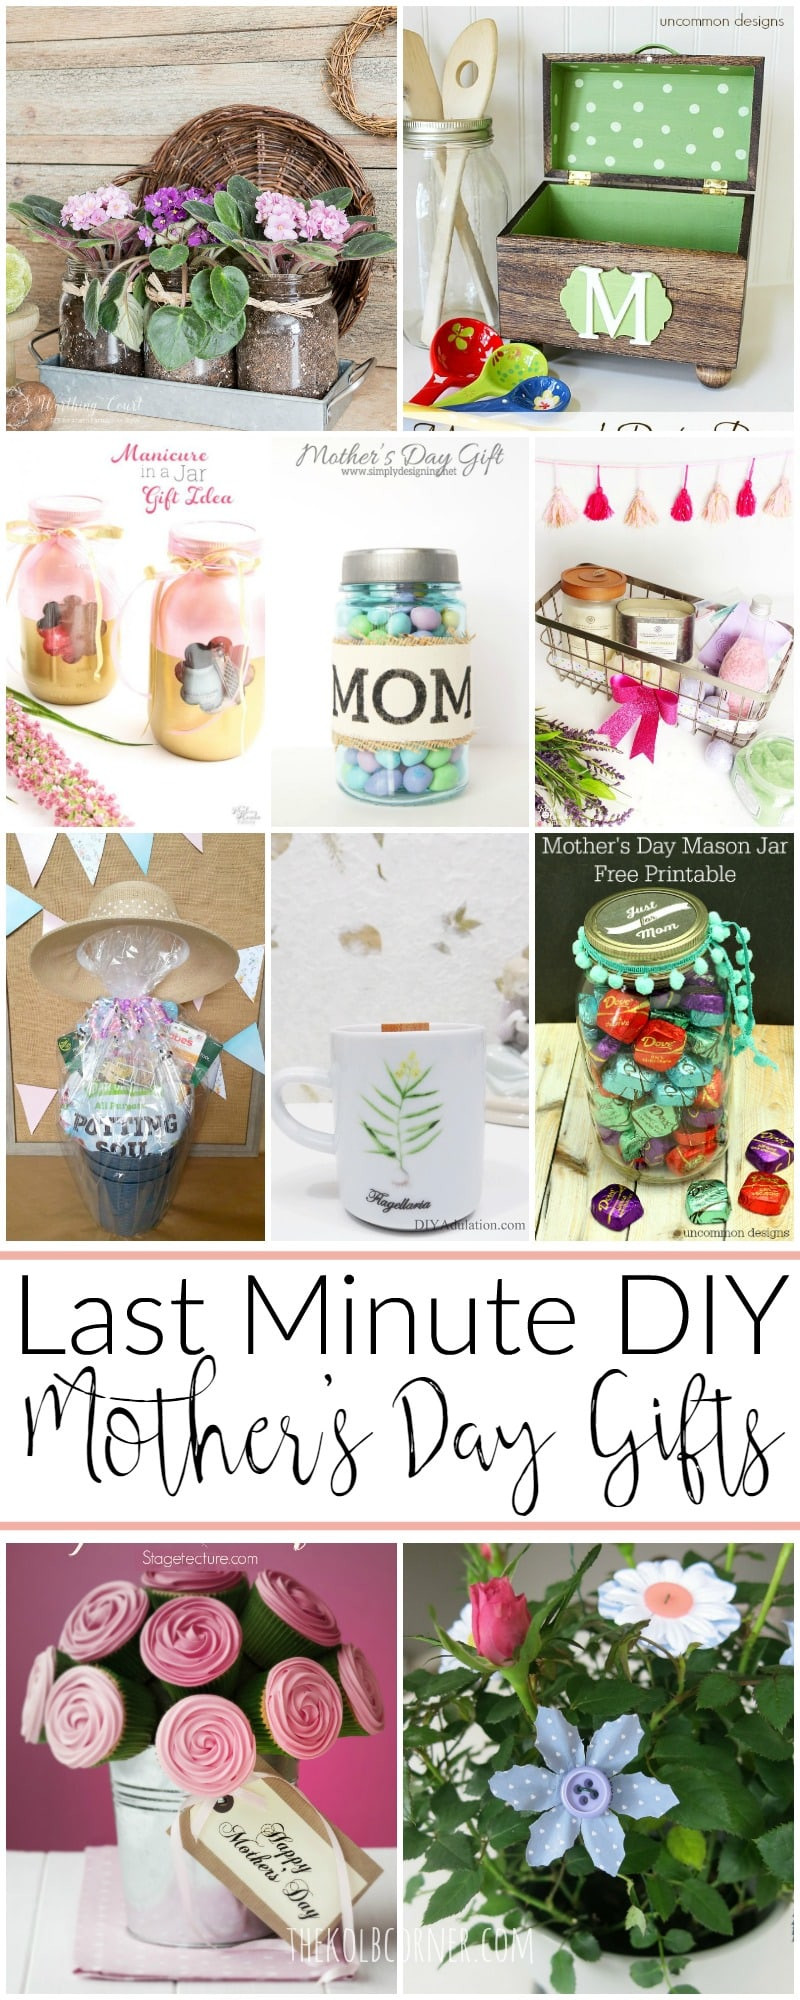 Best ideas about Mother'S Day Gift Ideas Diy . Save or Pin Last Minute DIY Mother s Day Gift Ideas Now.